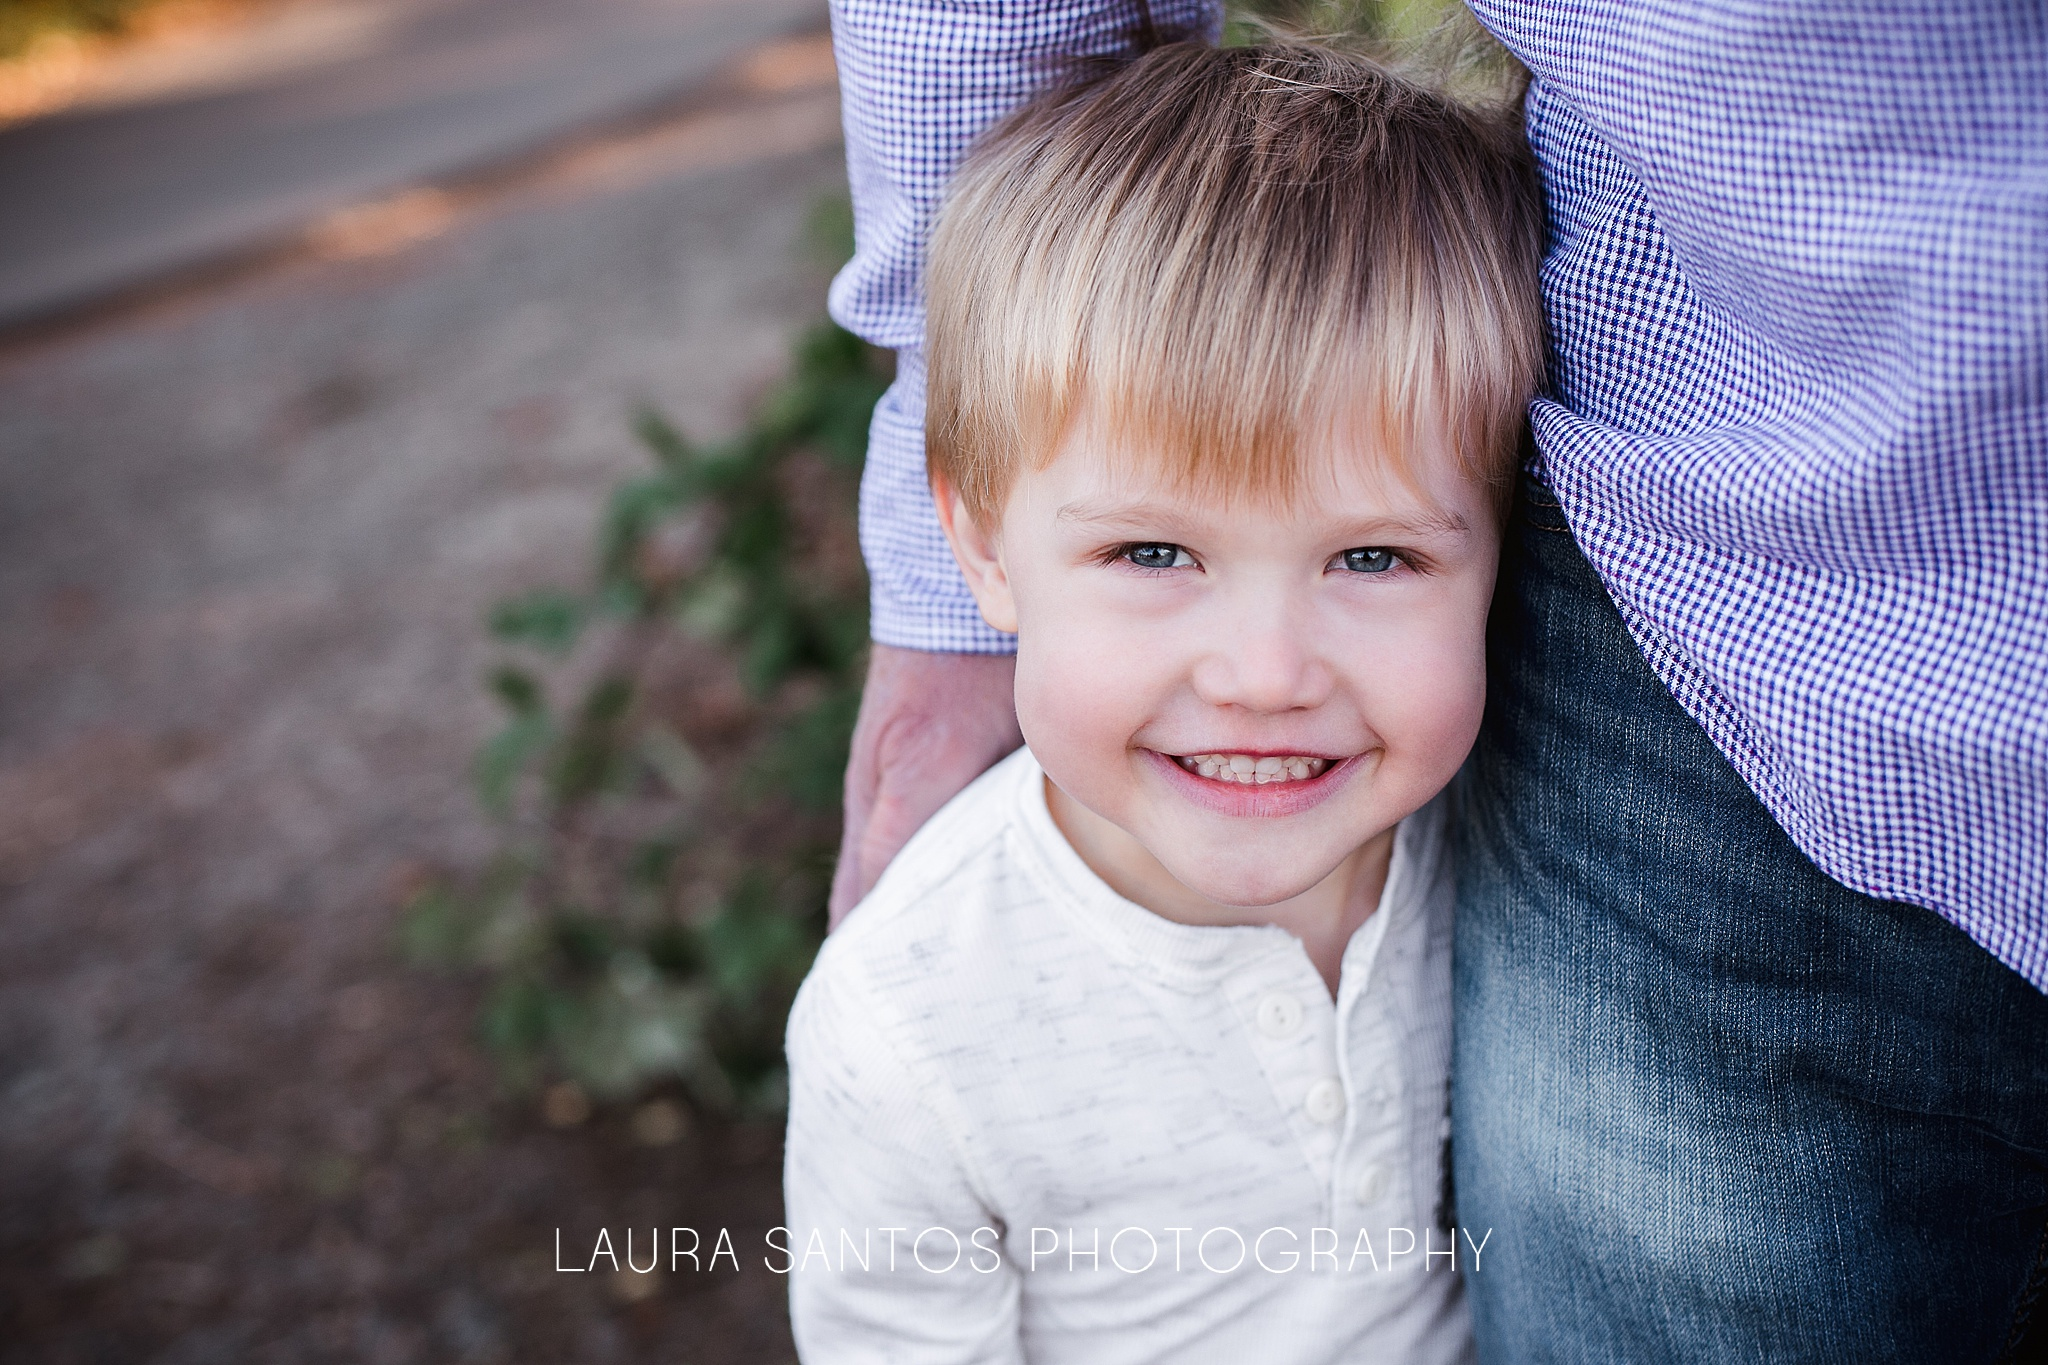 Laura Santos Photography Portland Oregon Family Photographer_0782.jpg